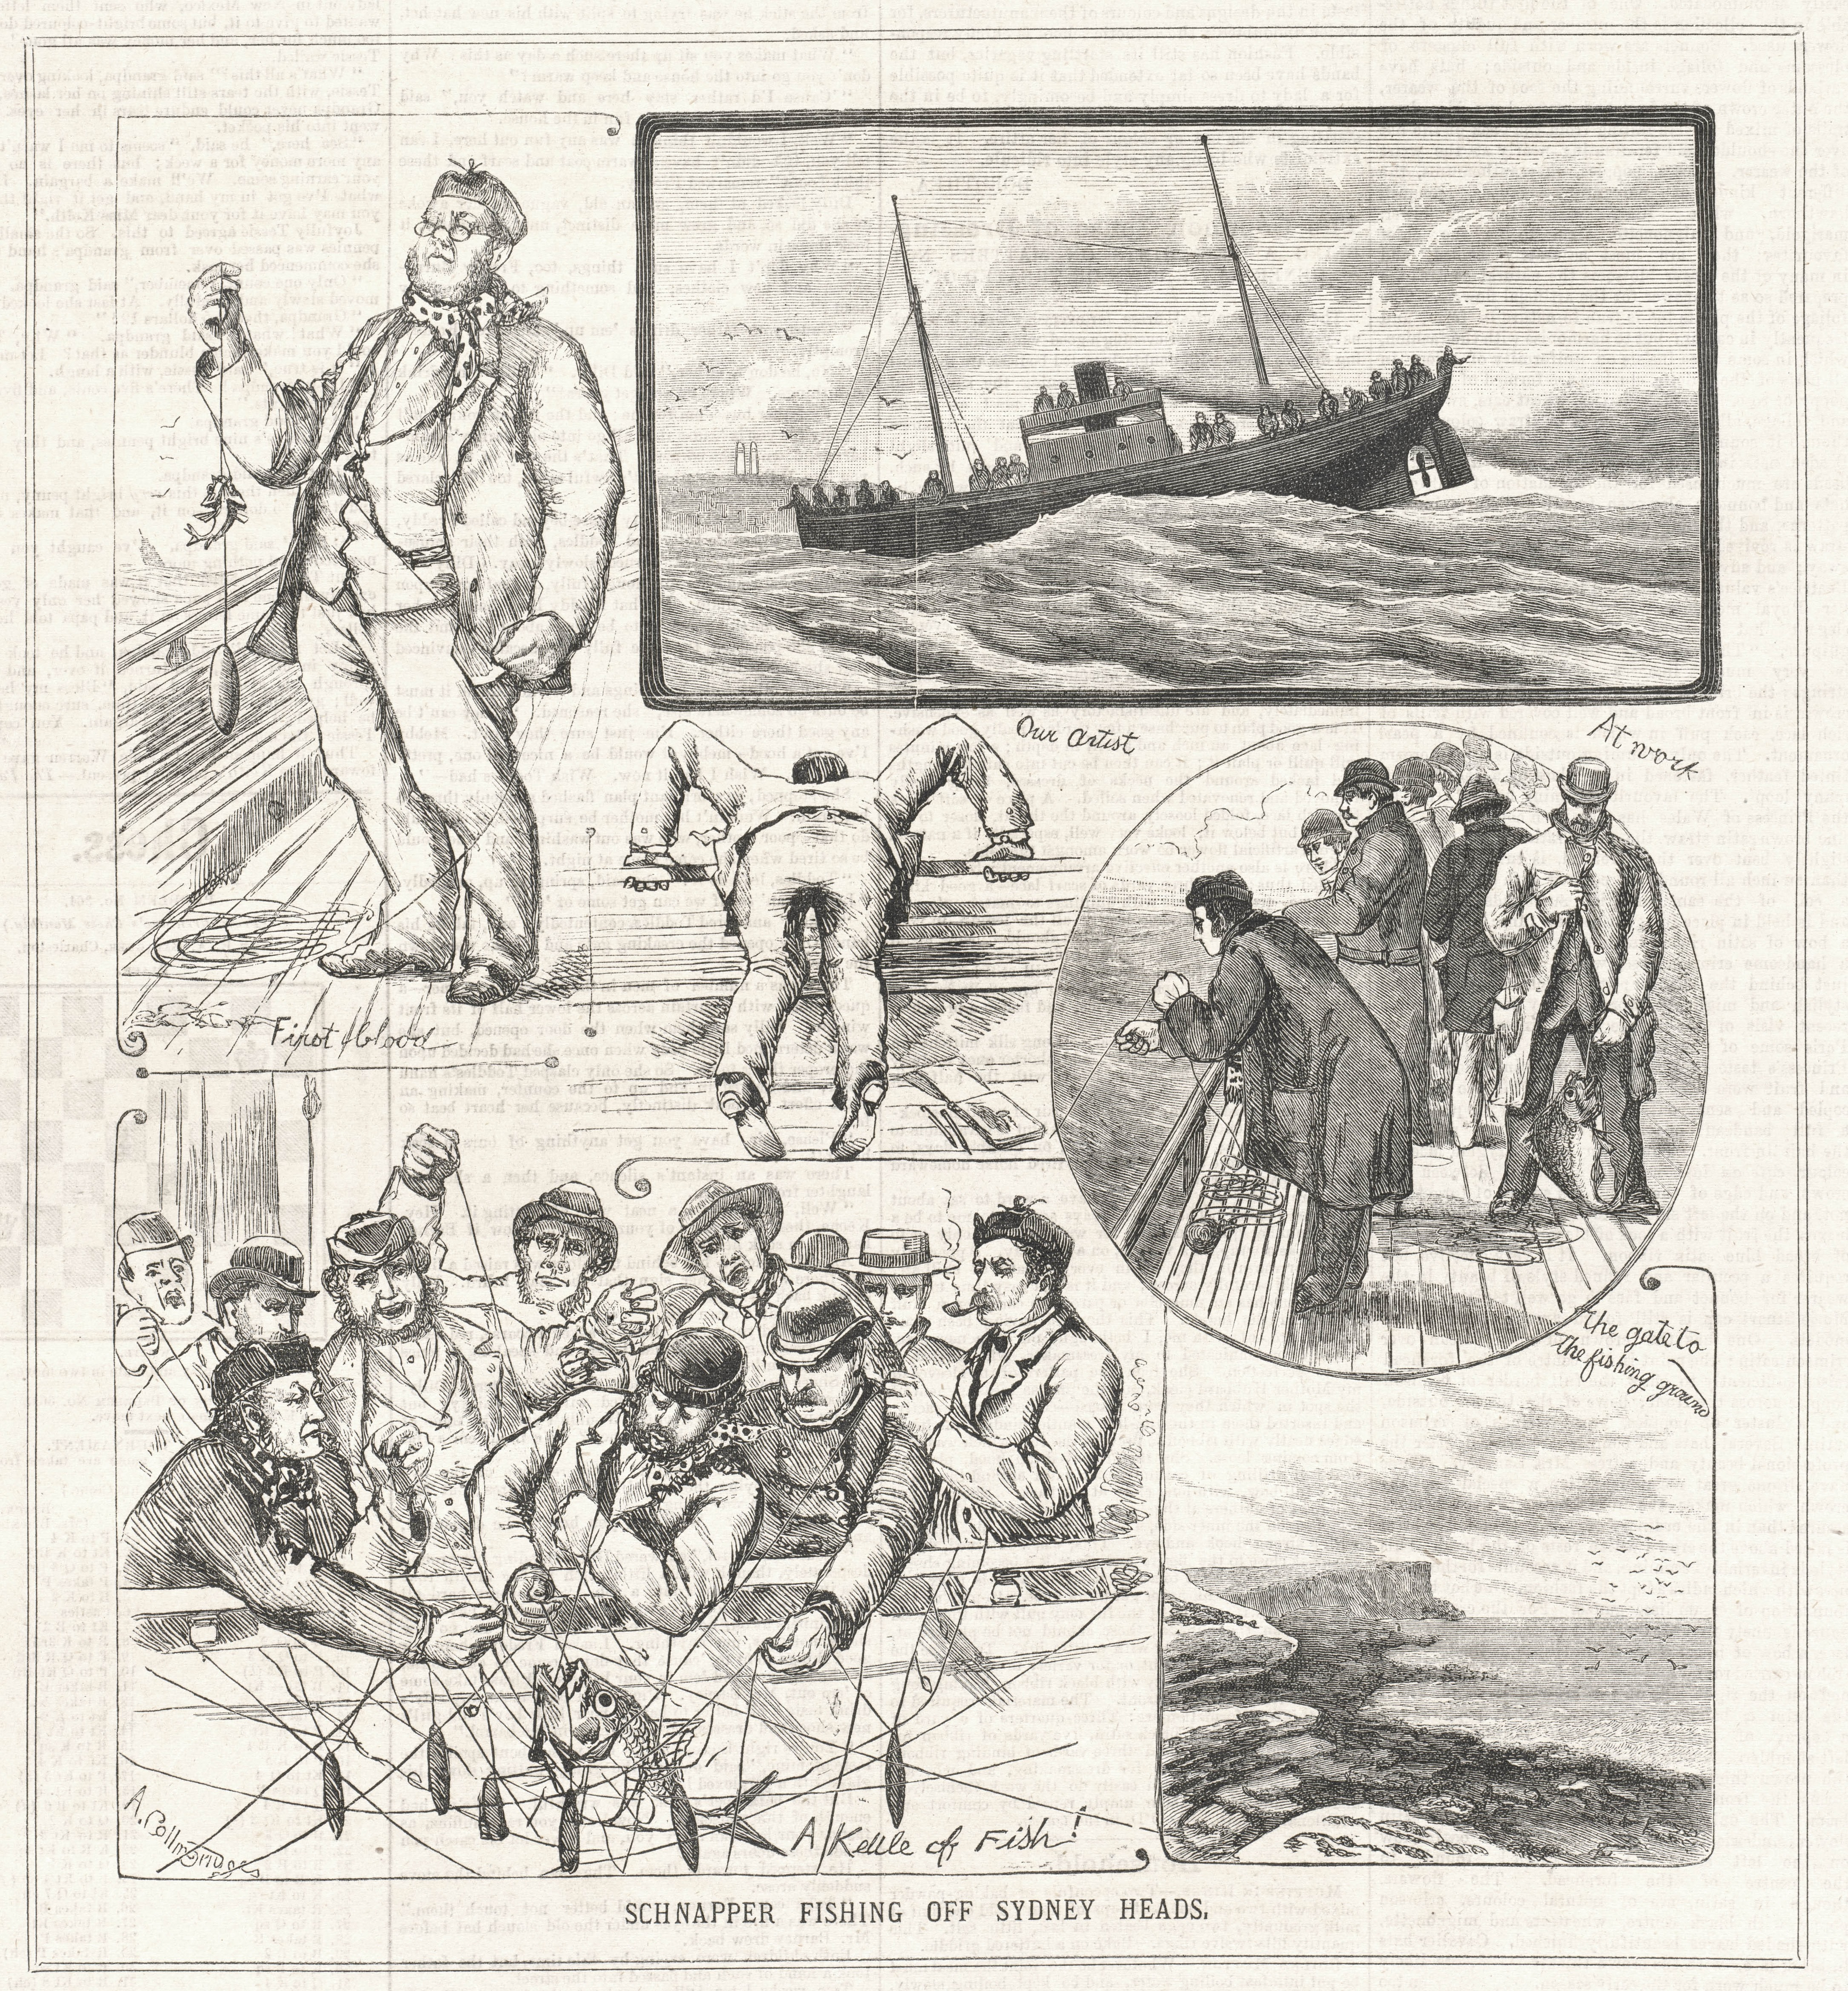 Snapper Fishing Off Sydney Heads, from the Sydney Mail, 26 August 1893